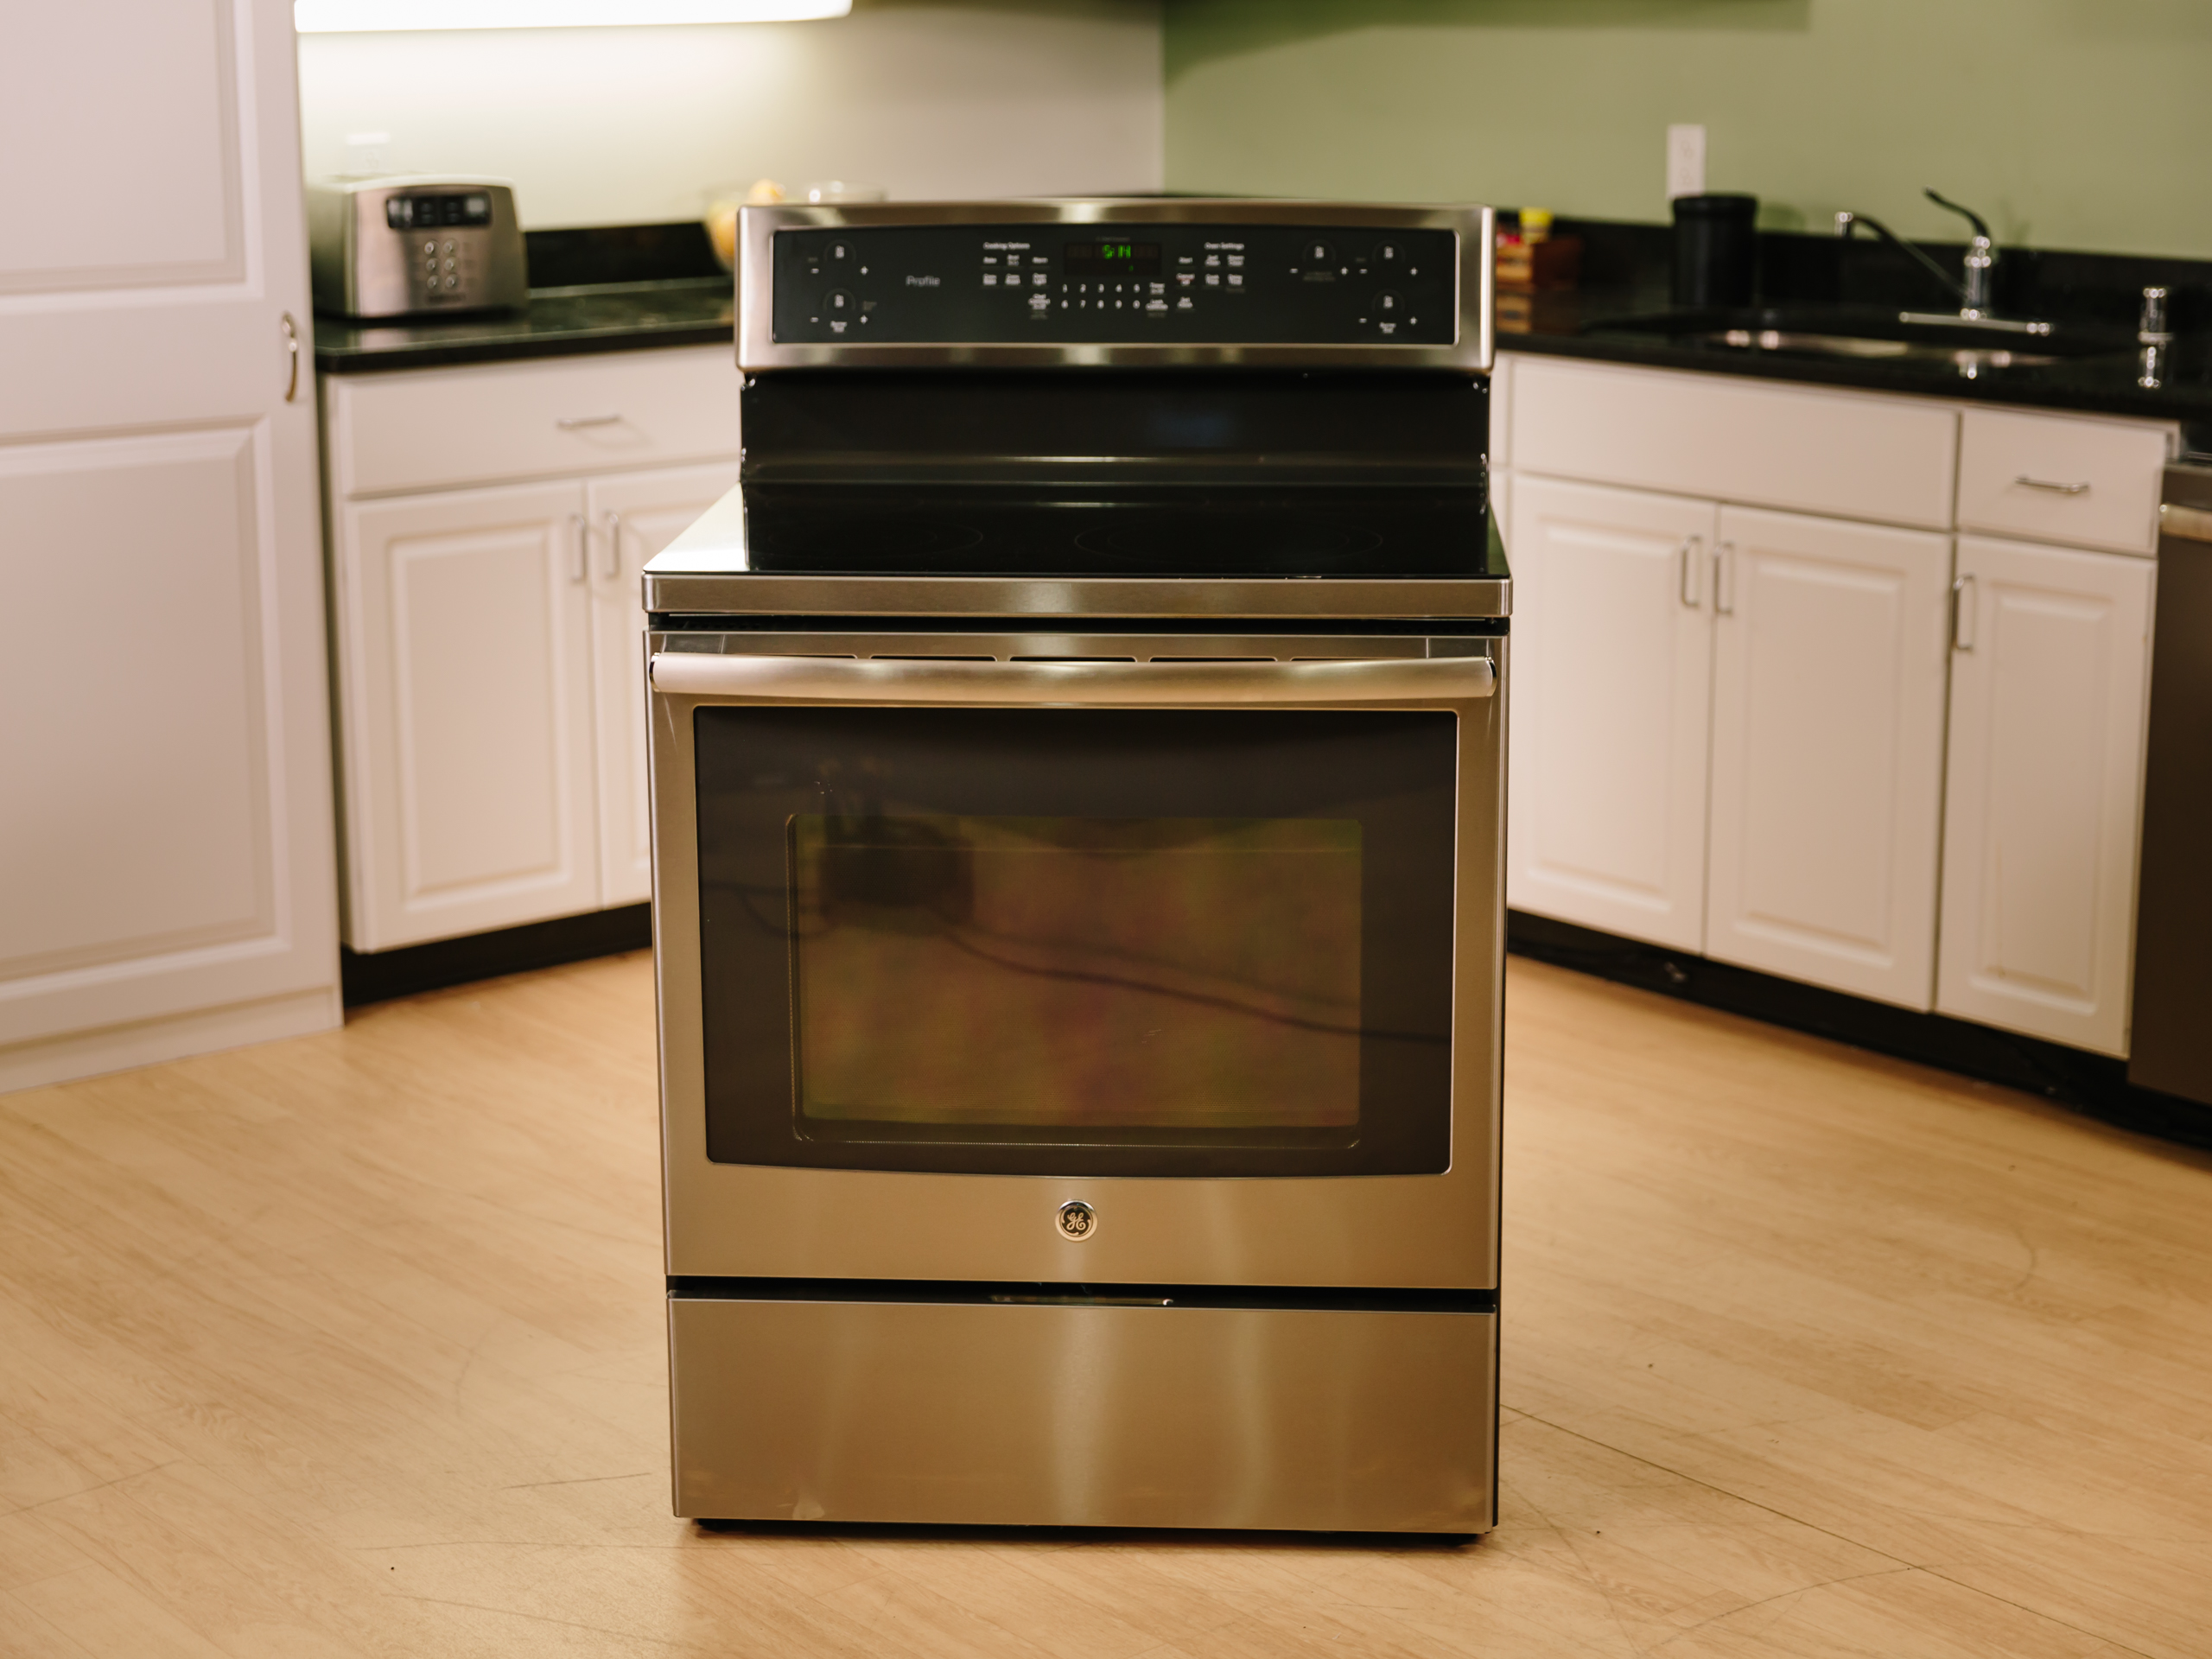 The tech's good, but the cooking's better with this GE range